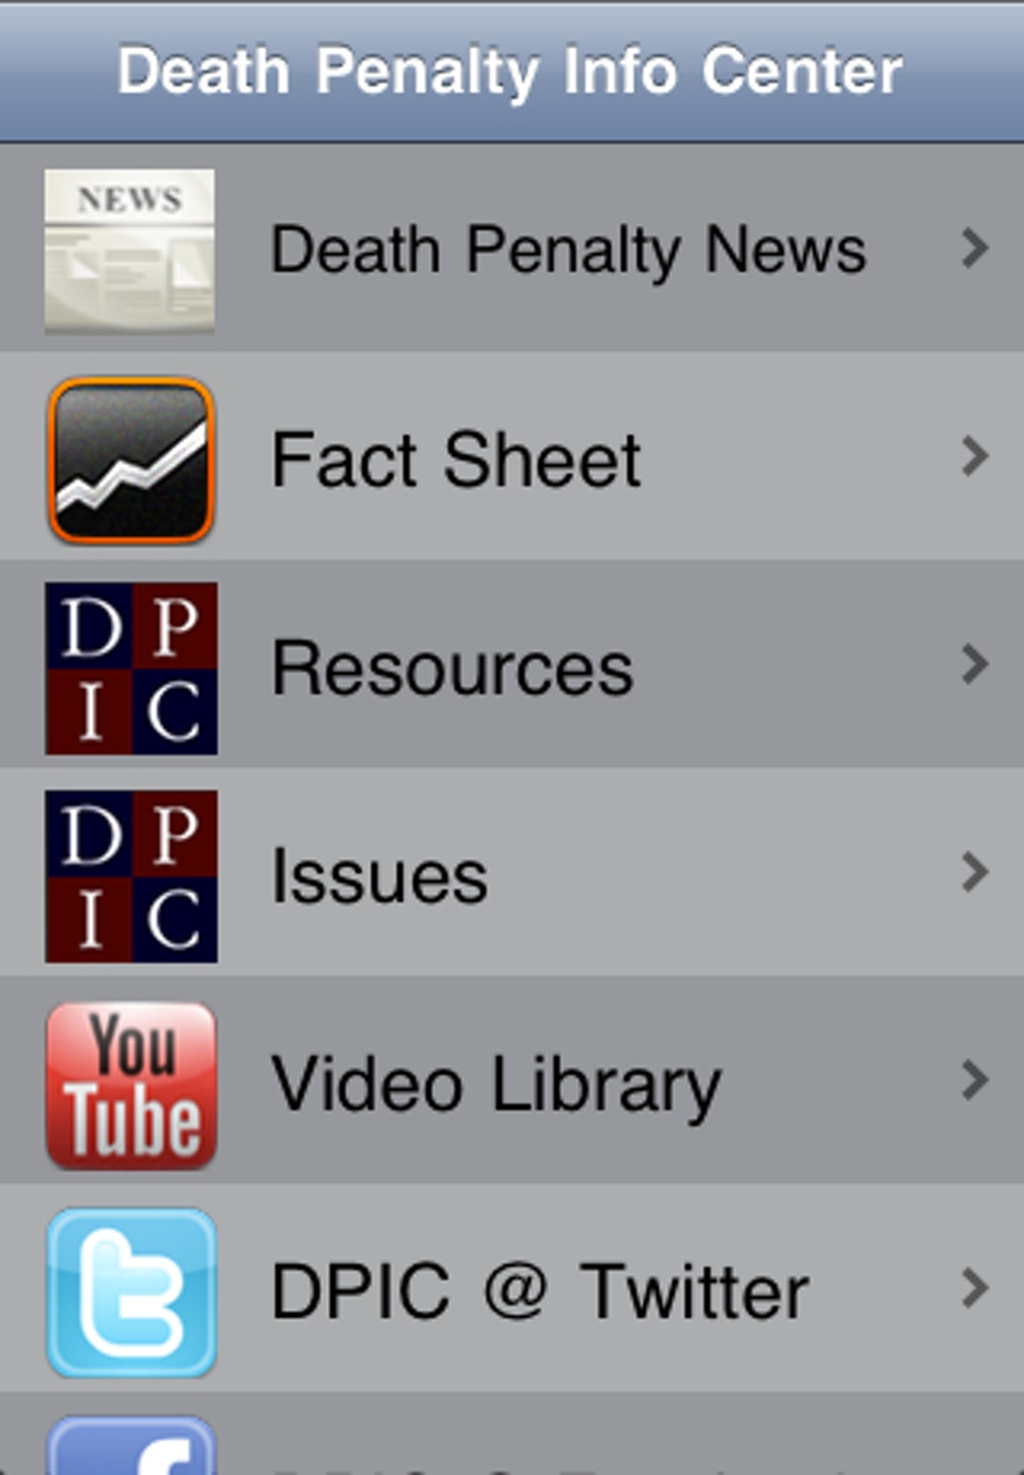 NEW RESOURCES: DPIC Introduces App… | Death Penalty